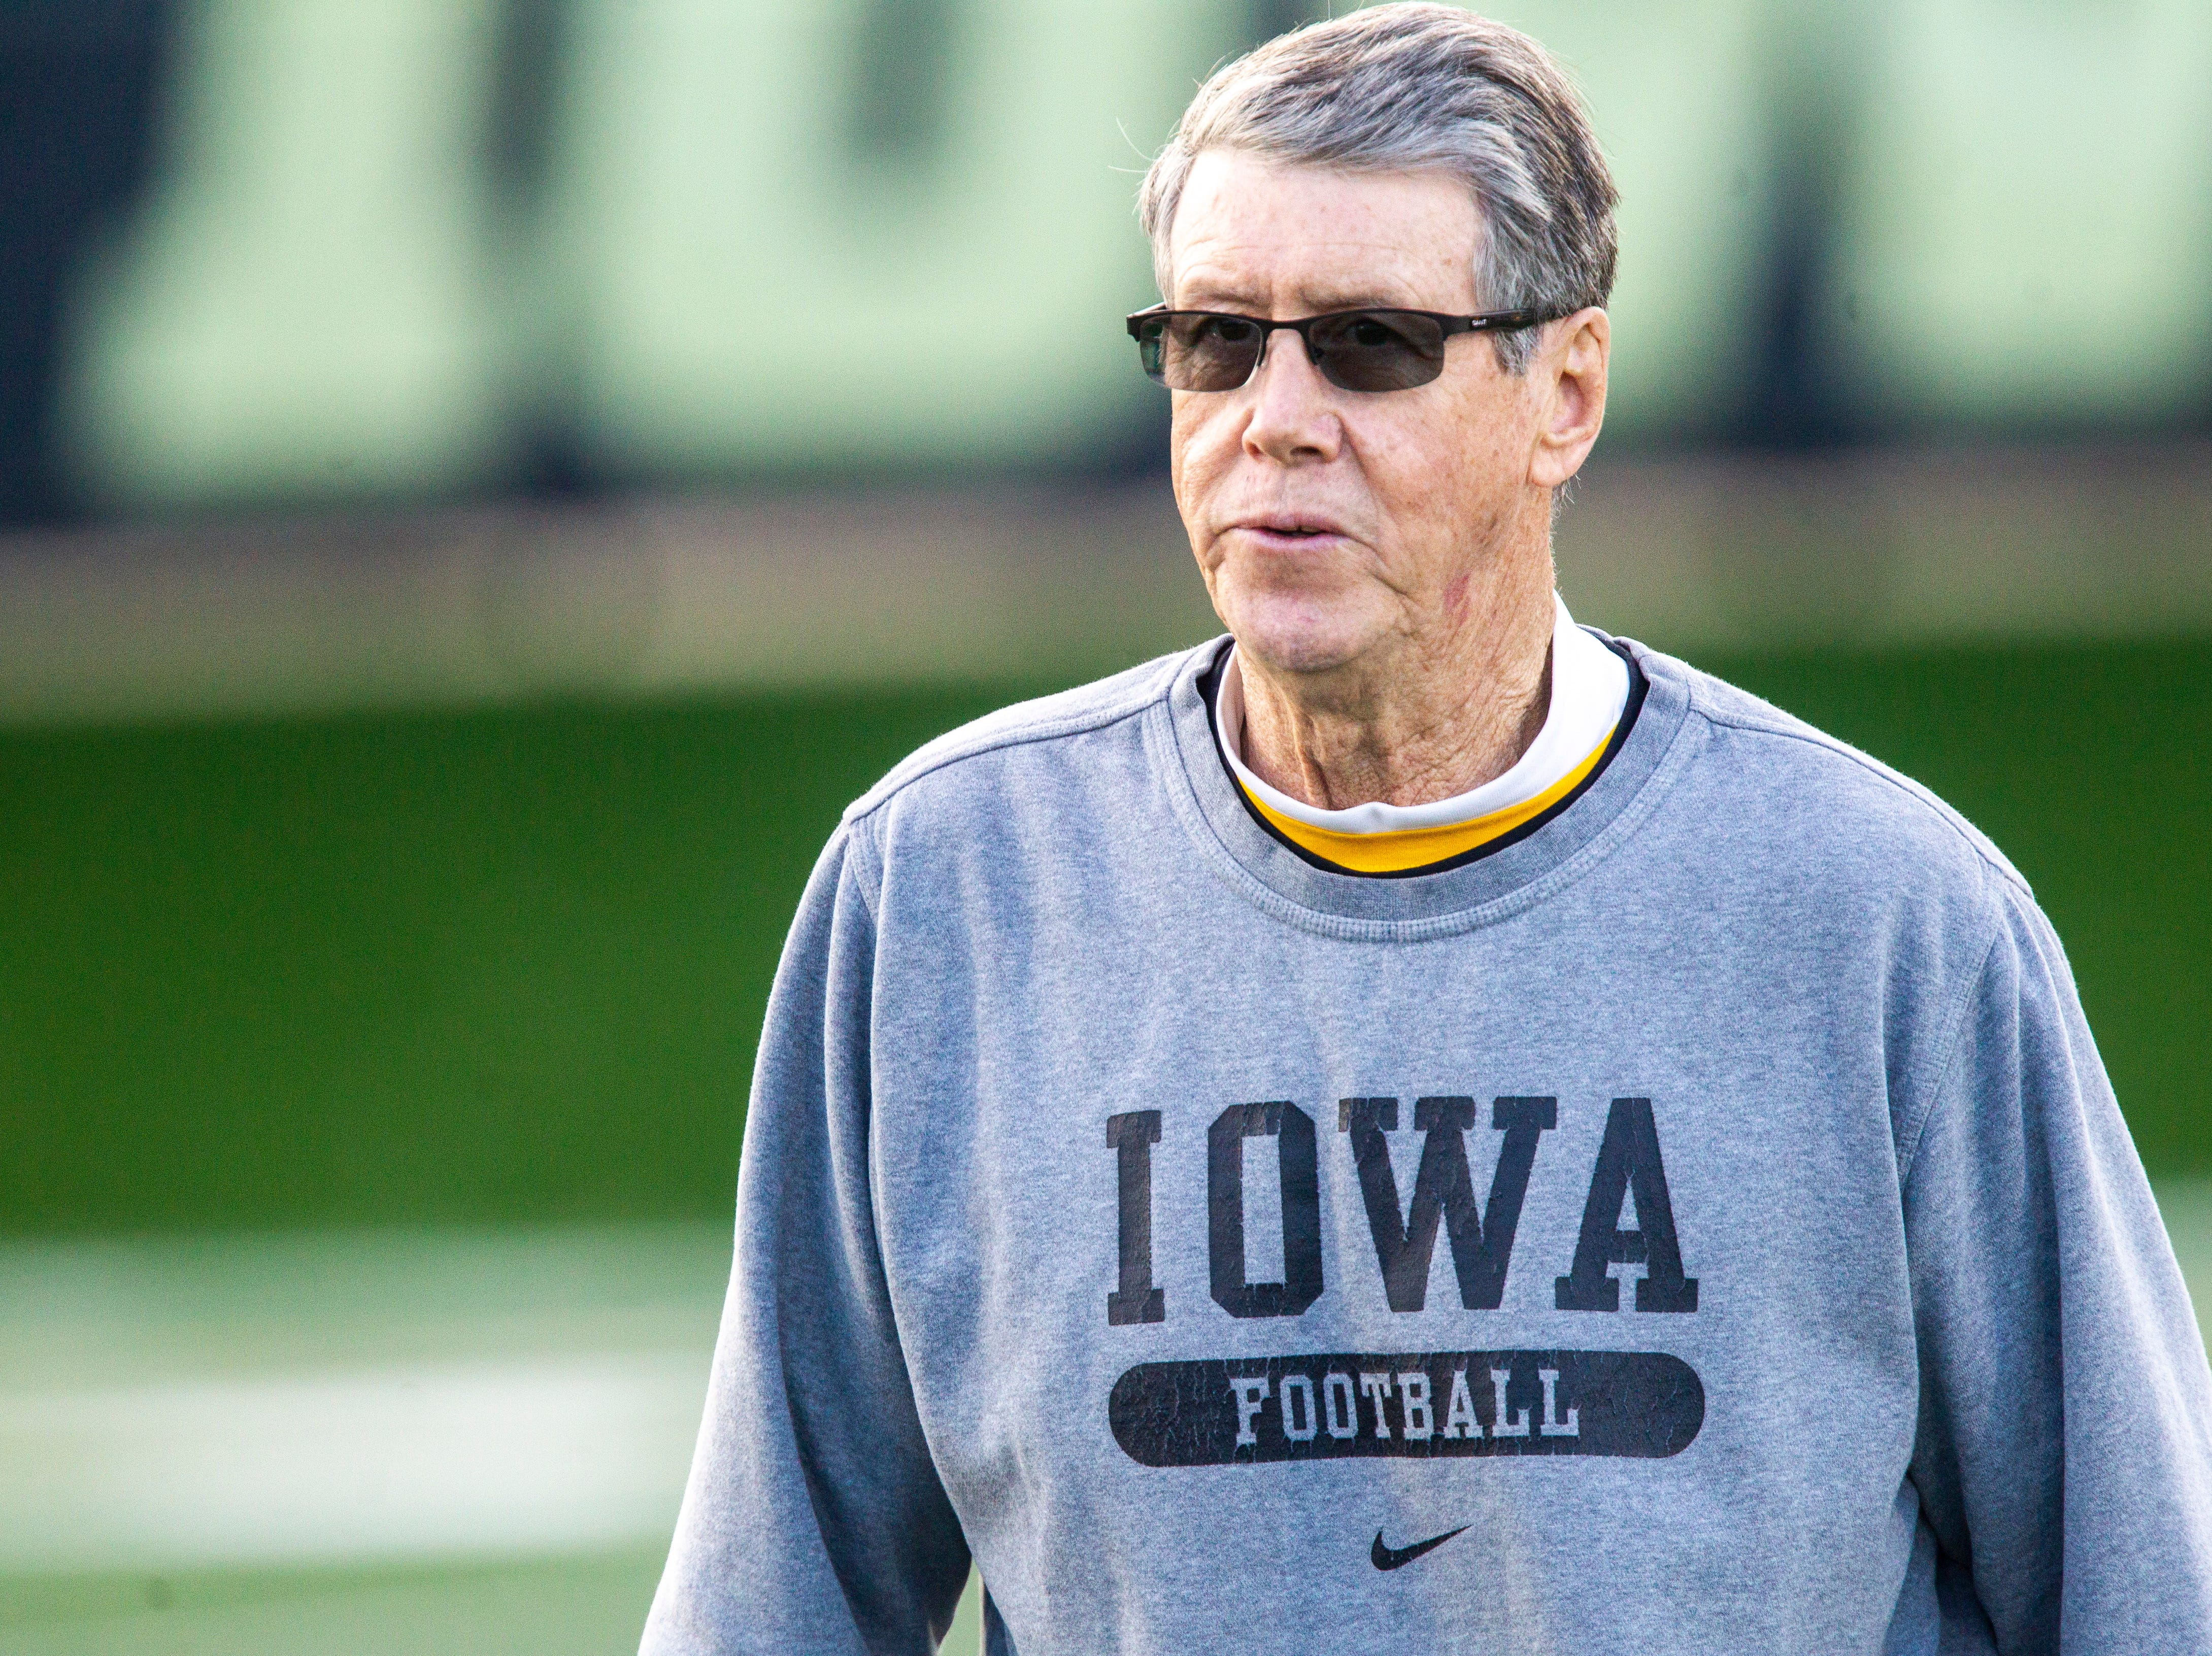 Iowa quarterbacks coach Ken O'Keefe is pictured during the final spring football practice, Friday, April 26, 2019, at the University of Iowa outdoor practice facility in Iowa City, Iowa.